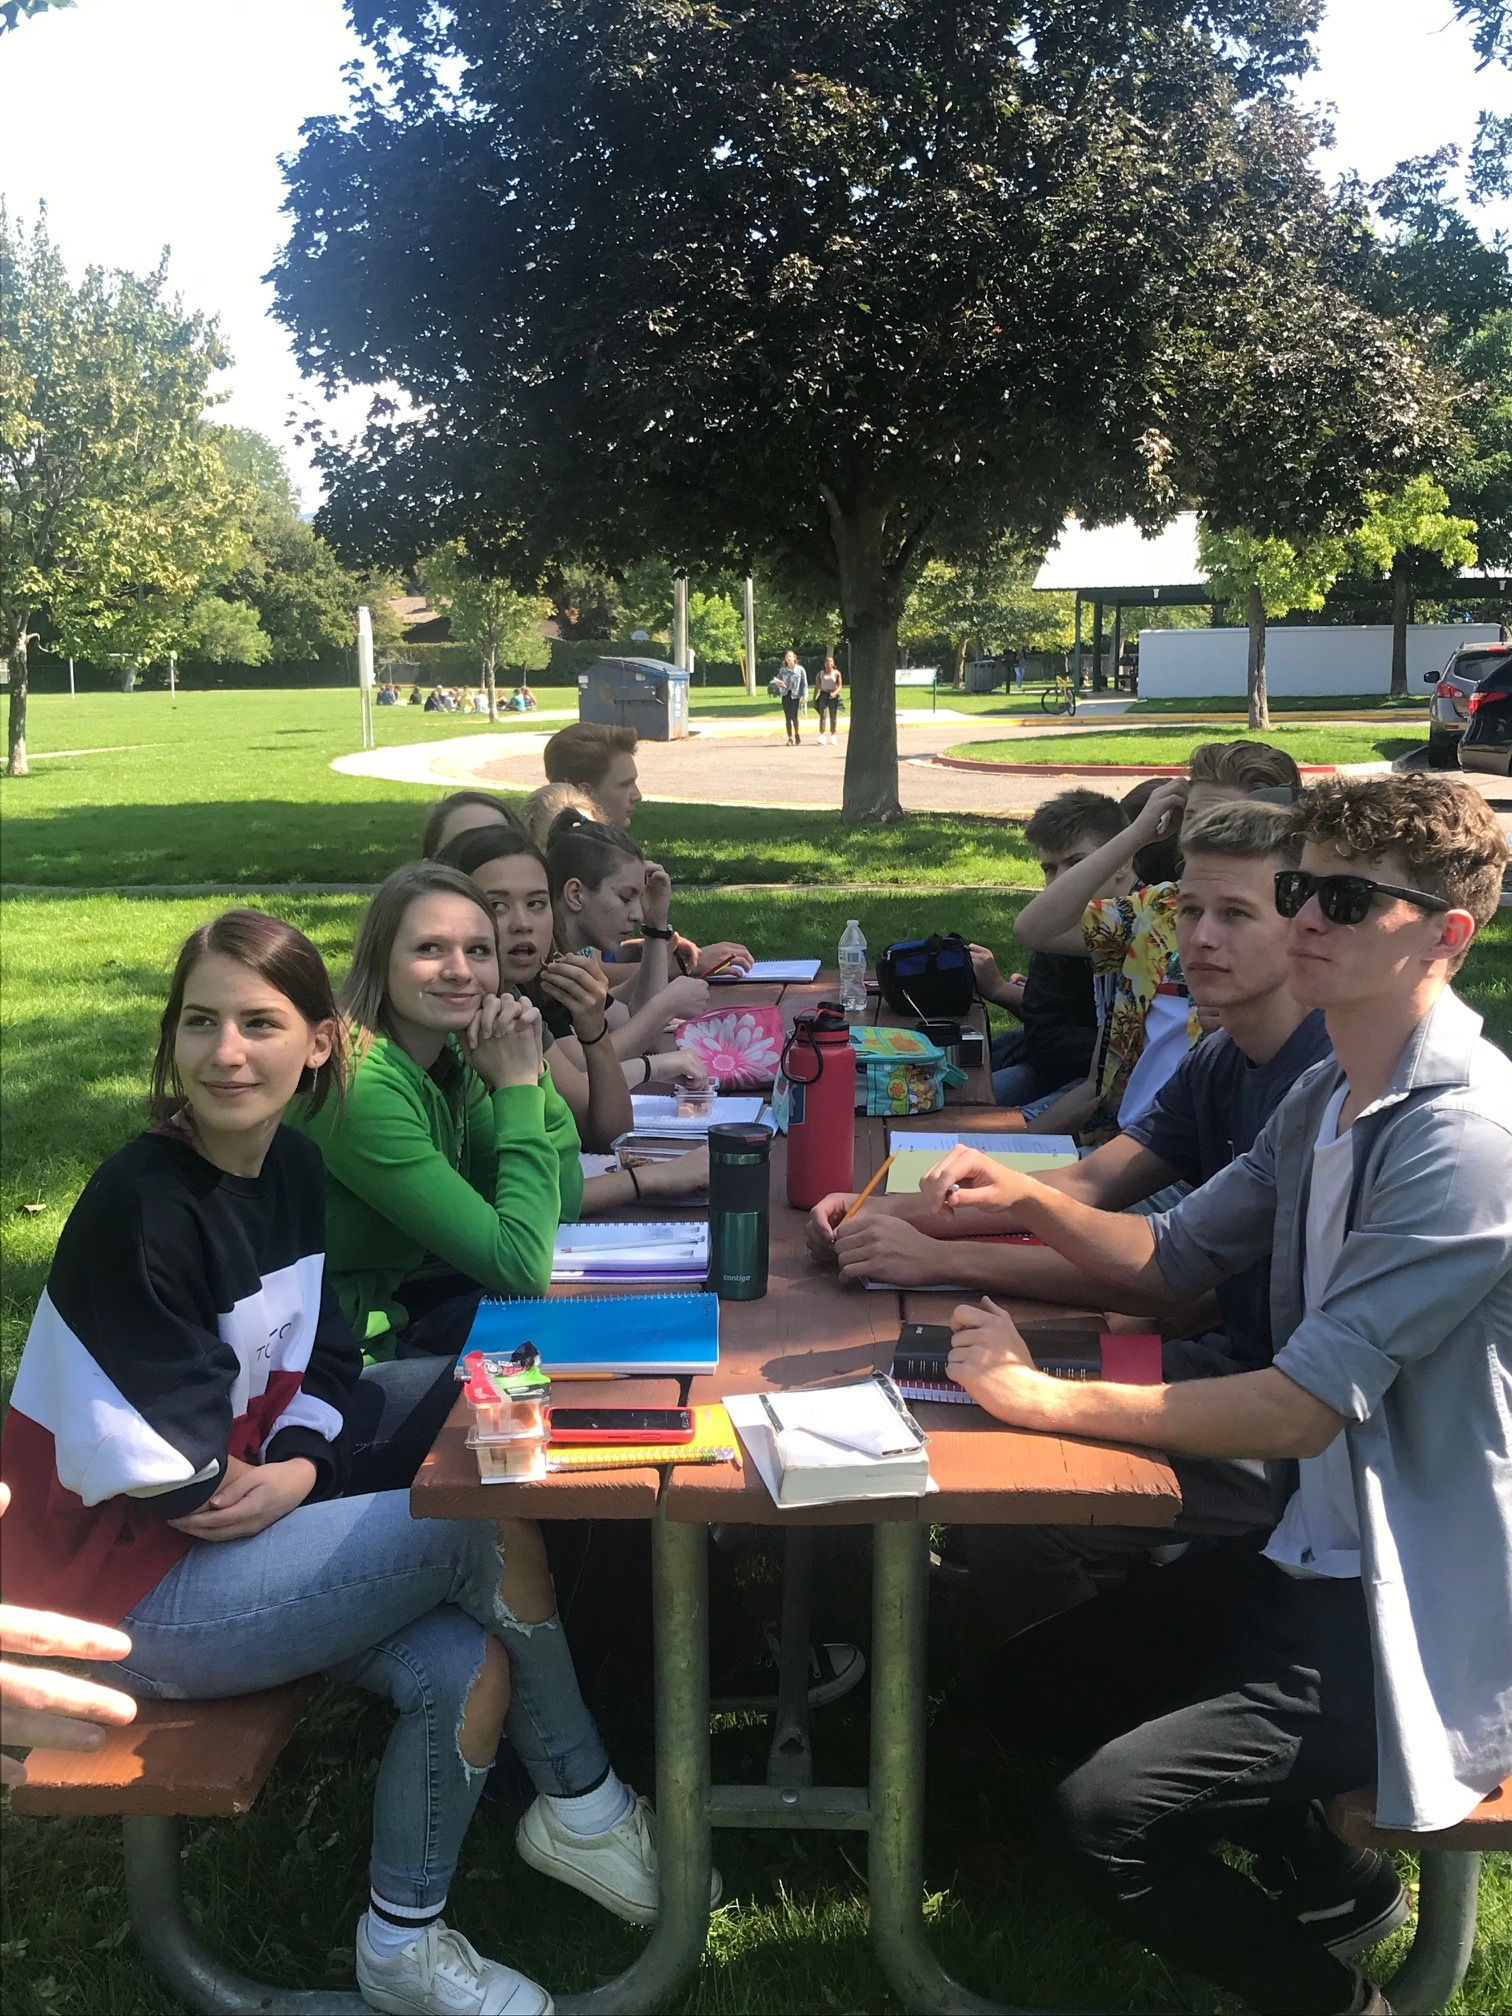 When conditions became…less than optimal halfway through the morning at the Boise Church of Christ the second week of school, BCA students and staff barely missed a beat, moved school to a nearby park, and kept learning.